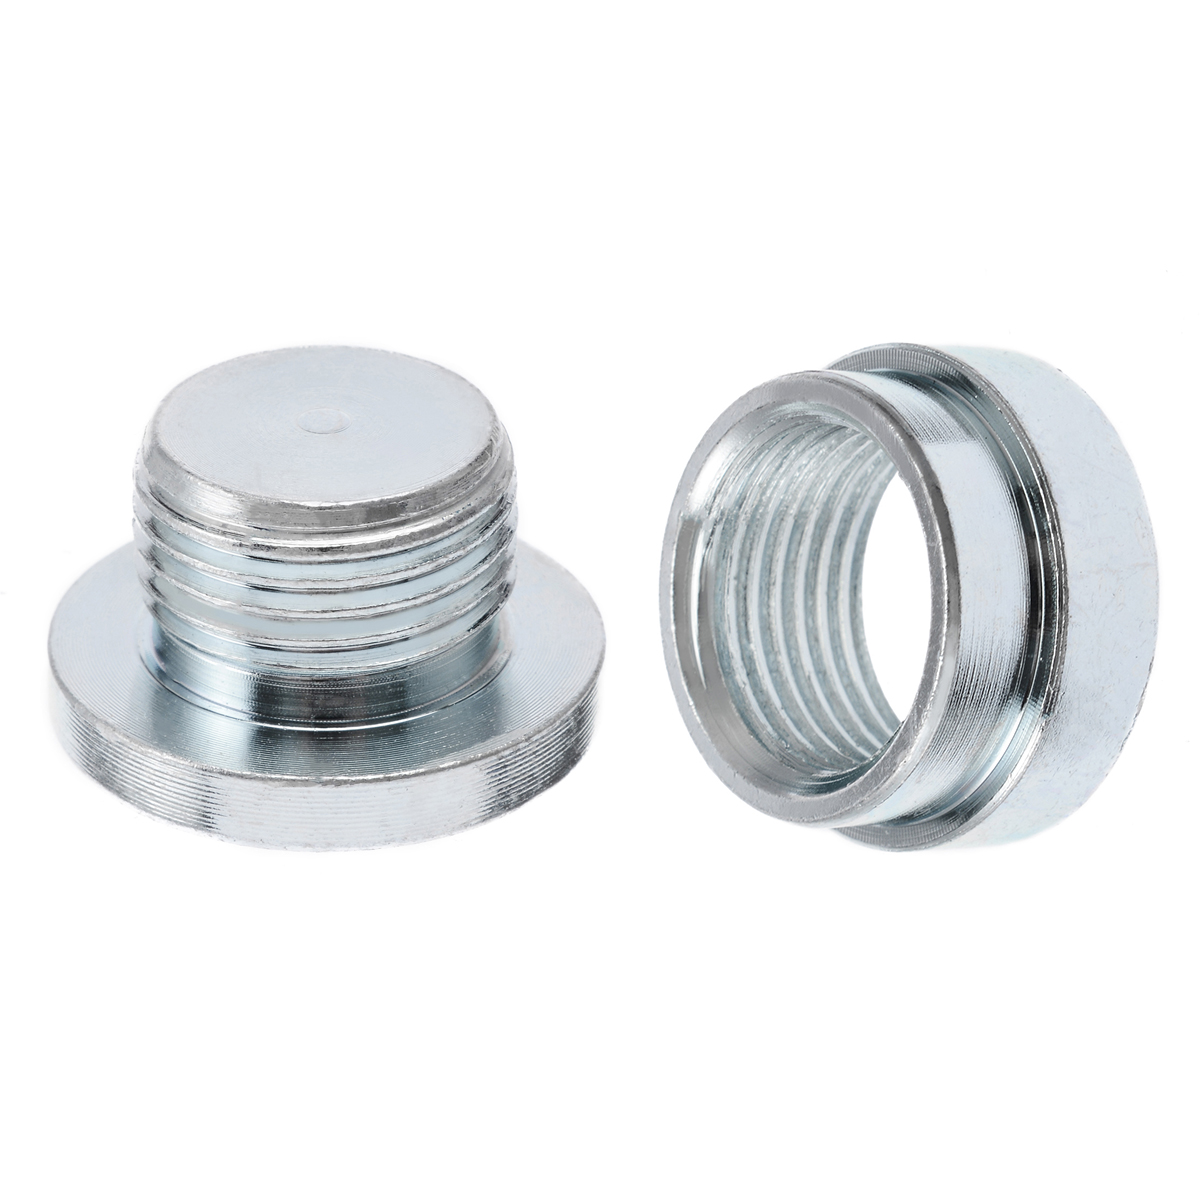 2pcs/set <font><b>M18</b></font> <font><b>x</b></font> <font><b>1.5</b></font> O2 Oxygen Sensor Stainless Steel Weld On Bung Plug Nut Cap Kit Easy To Weld On image